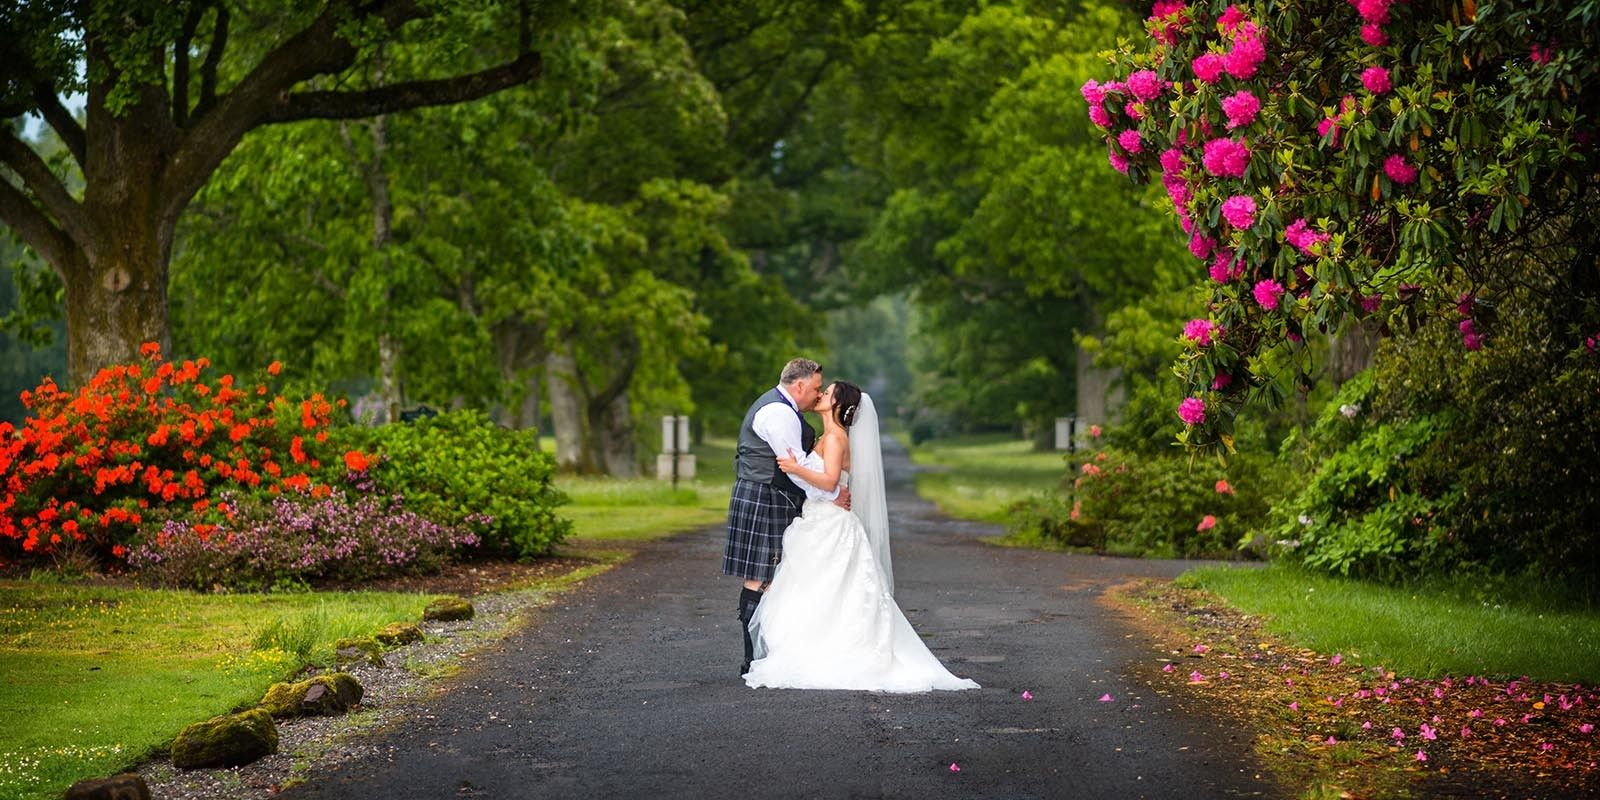 Stolen kisses and natural moments captured by Glasgow wedding Photographer Ian Arthur